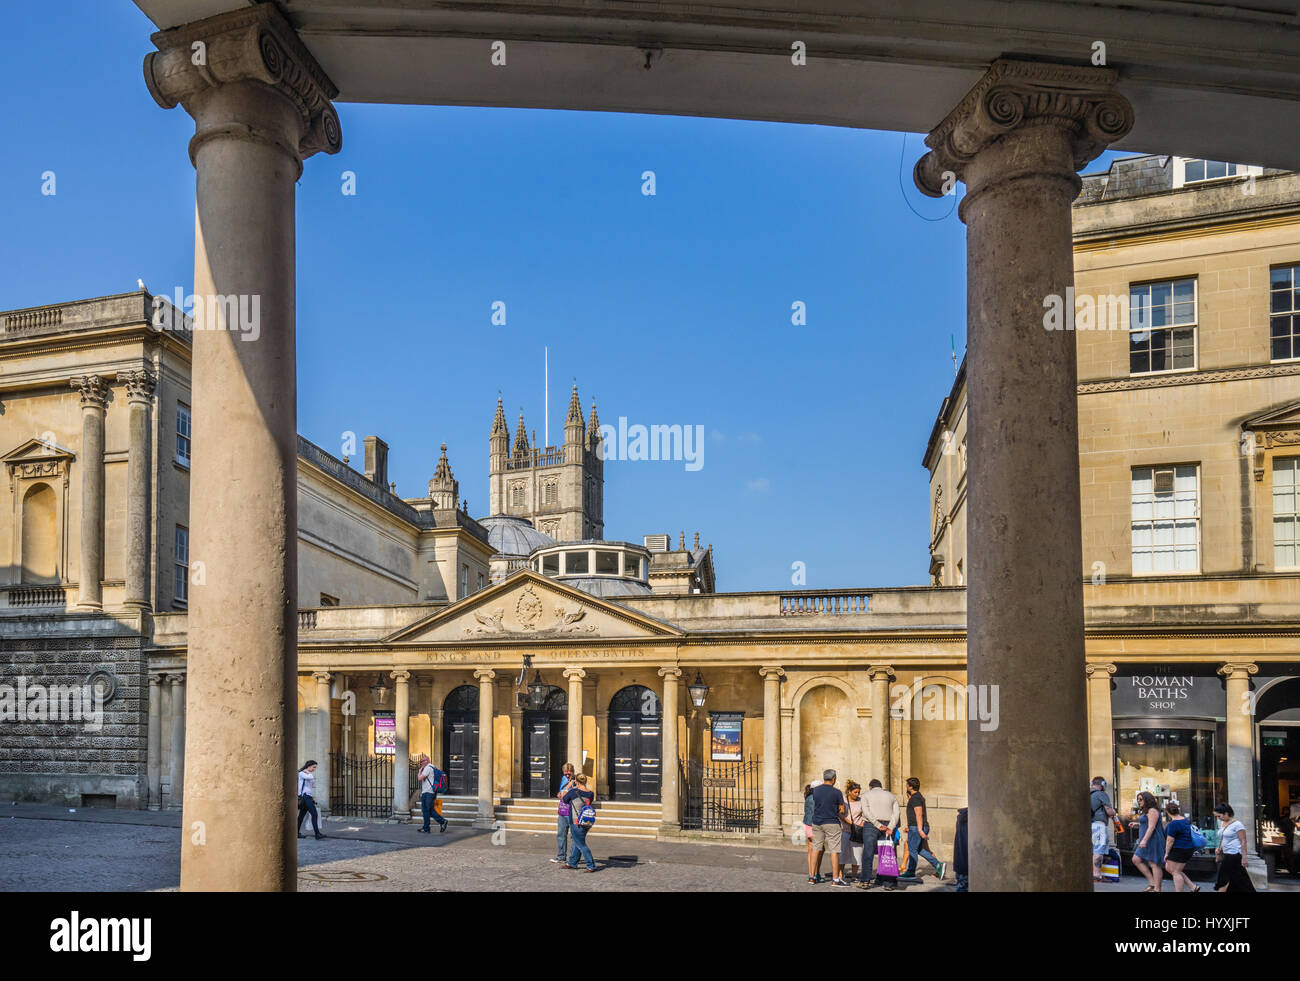 United Kingdom, Somerset, Bath, South Colonnade of the Grand Pump Room at the Roman Bath - Stock Image